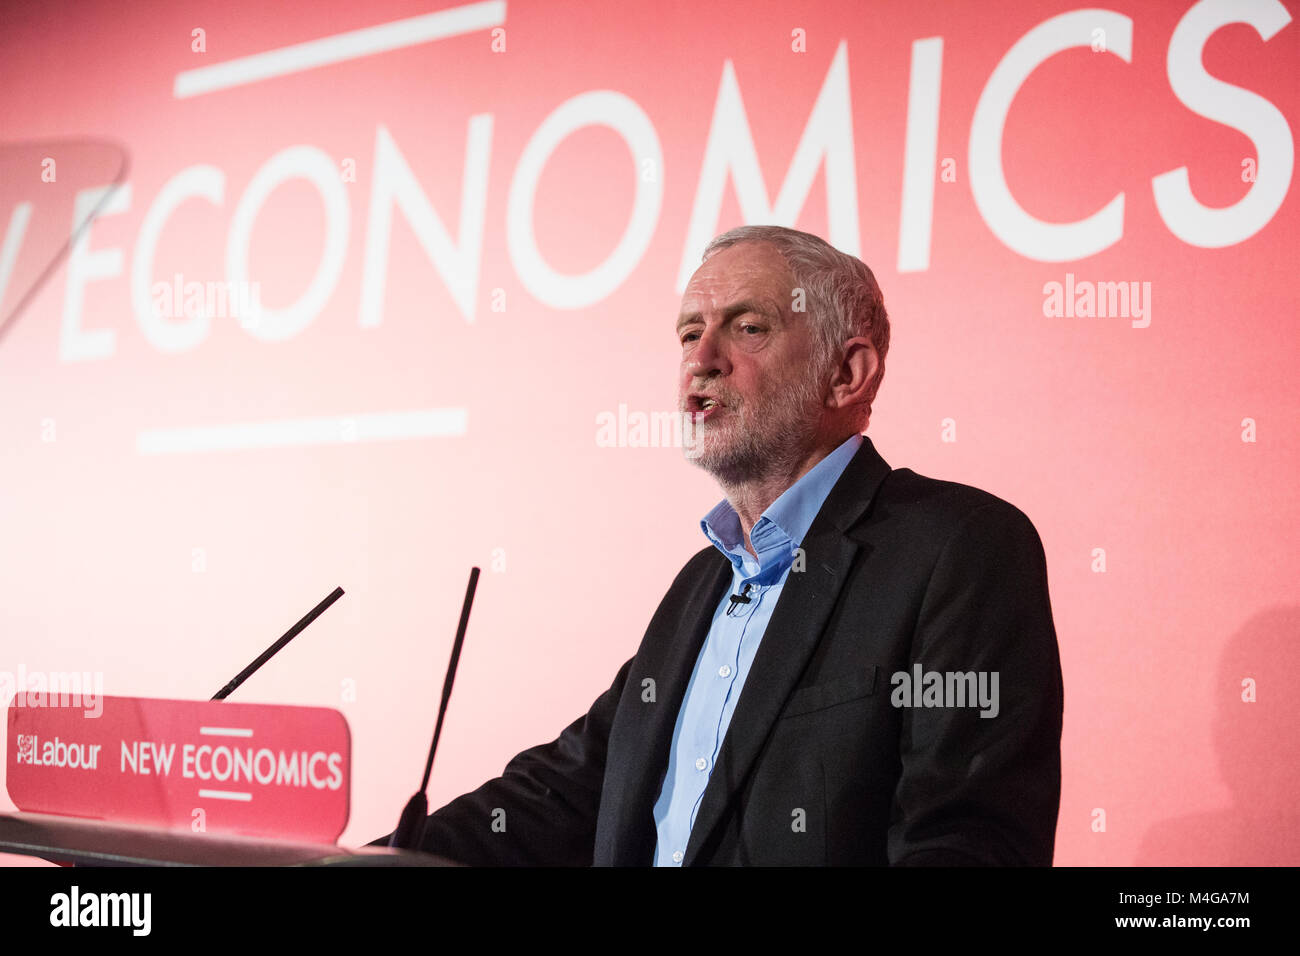 London, UK. 10th February, 2018. Jeremy Corbyn MP, Leader of the Opposition, addresses the Labour's Alternative - Stock Image